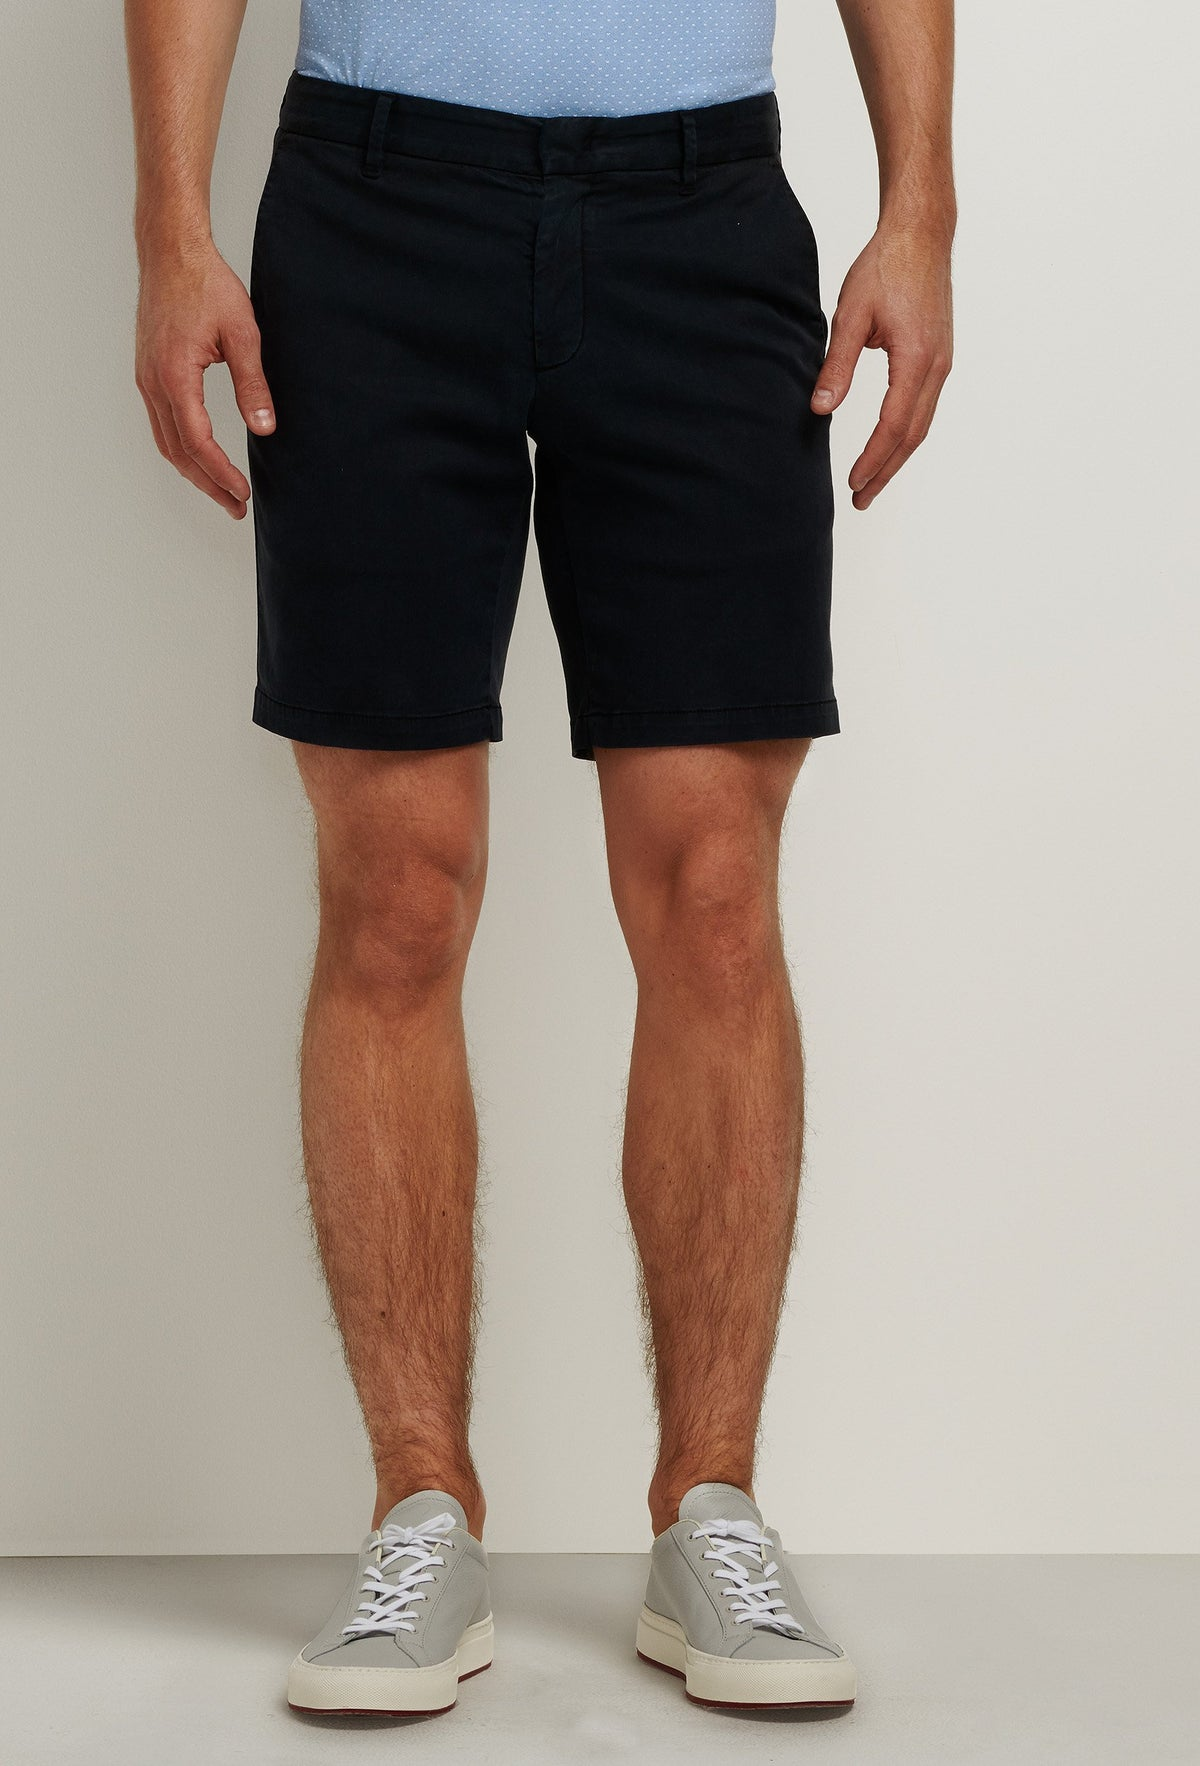 men's lightweight navy blue cotton shorts with pockets